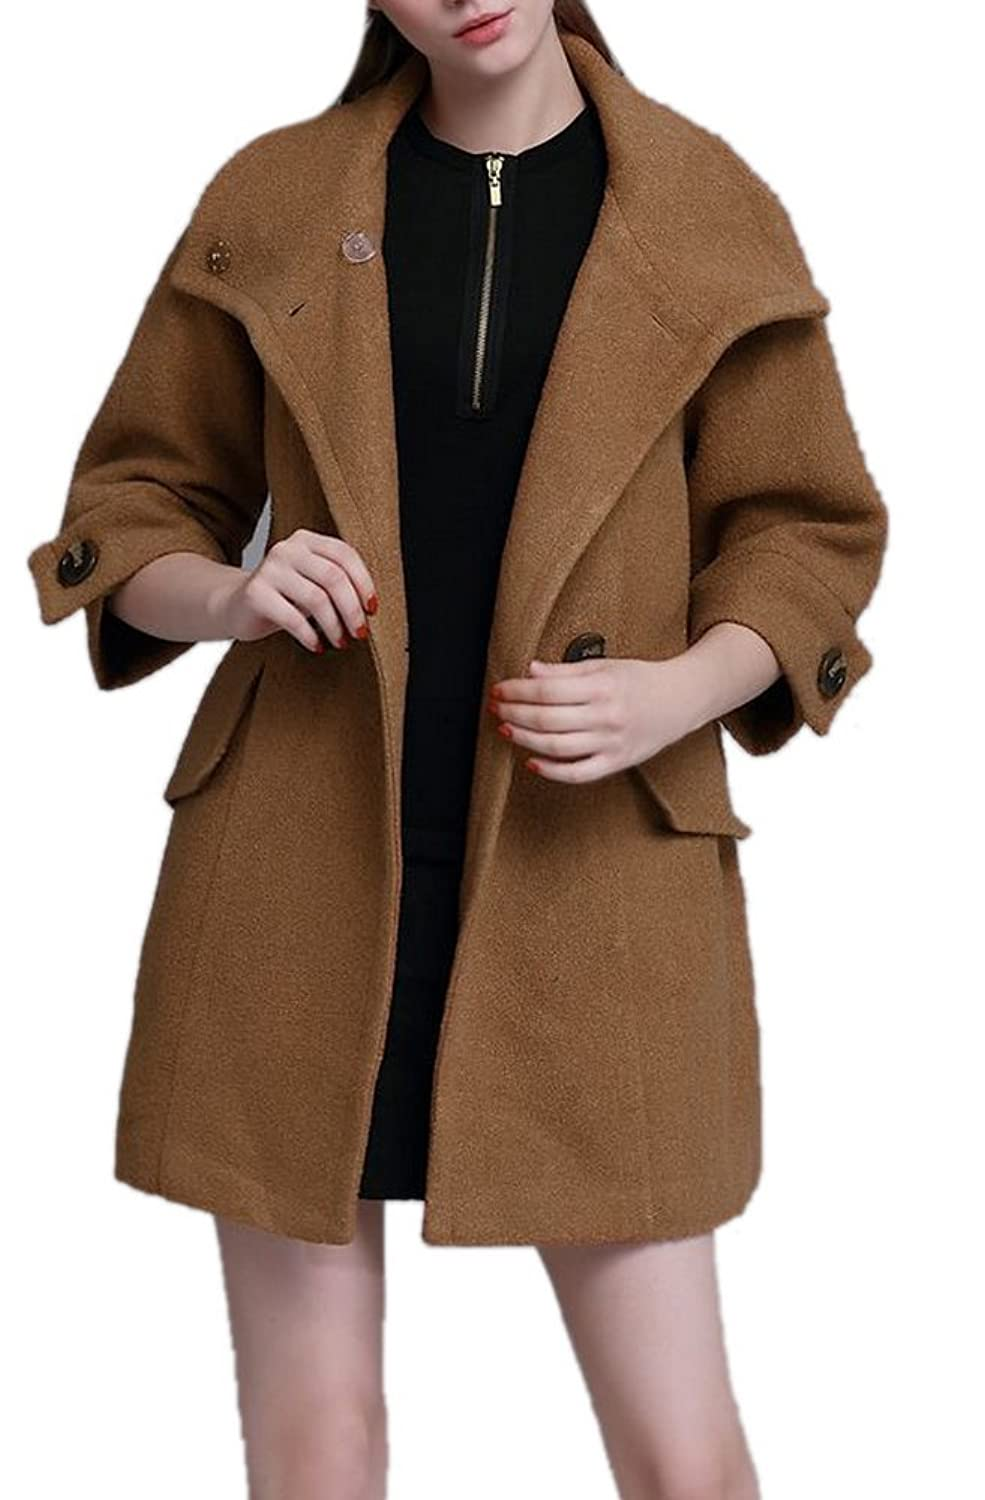 Allbebe Women's New Lapel Collar Wool Coat Double Breasted Trench Coat